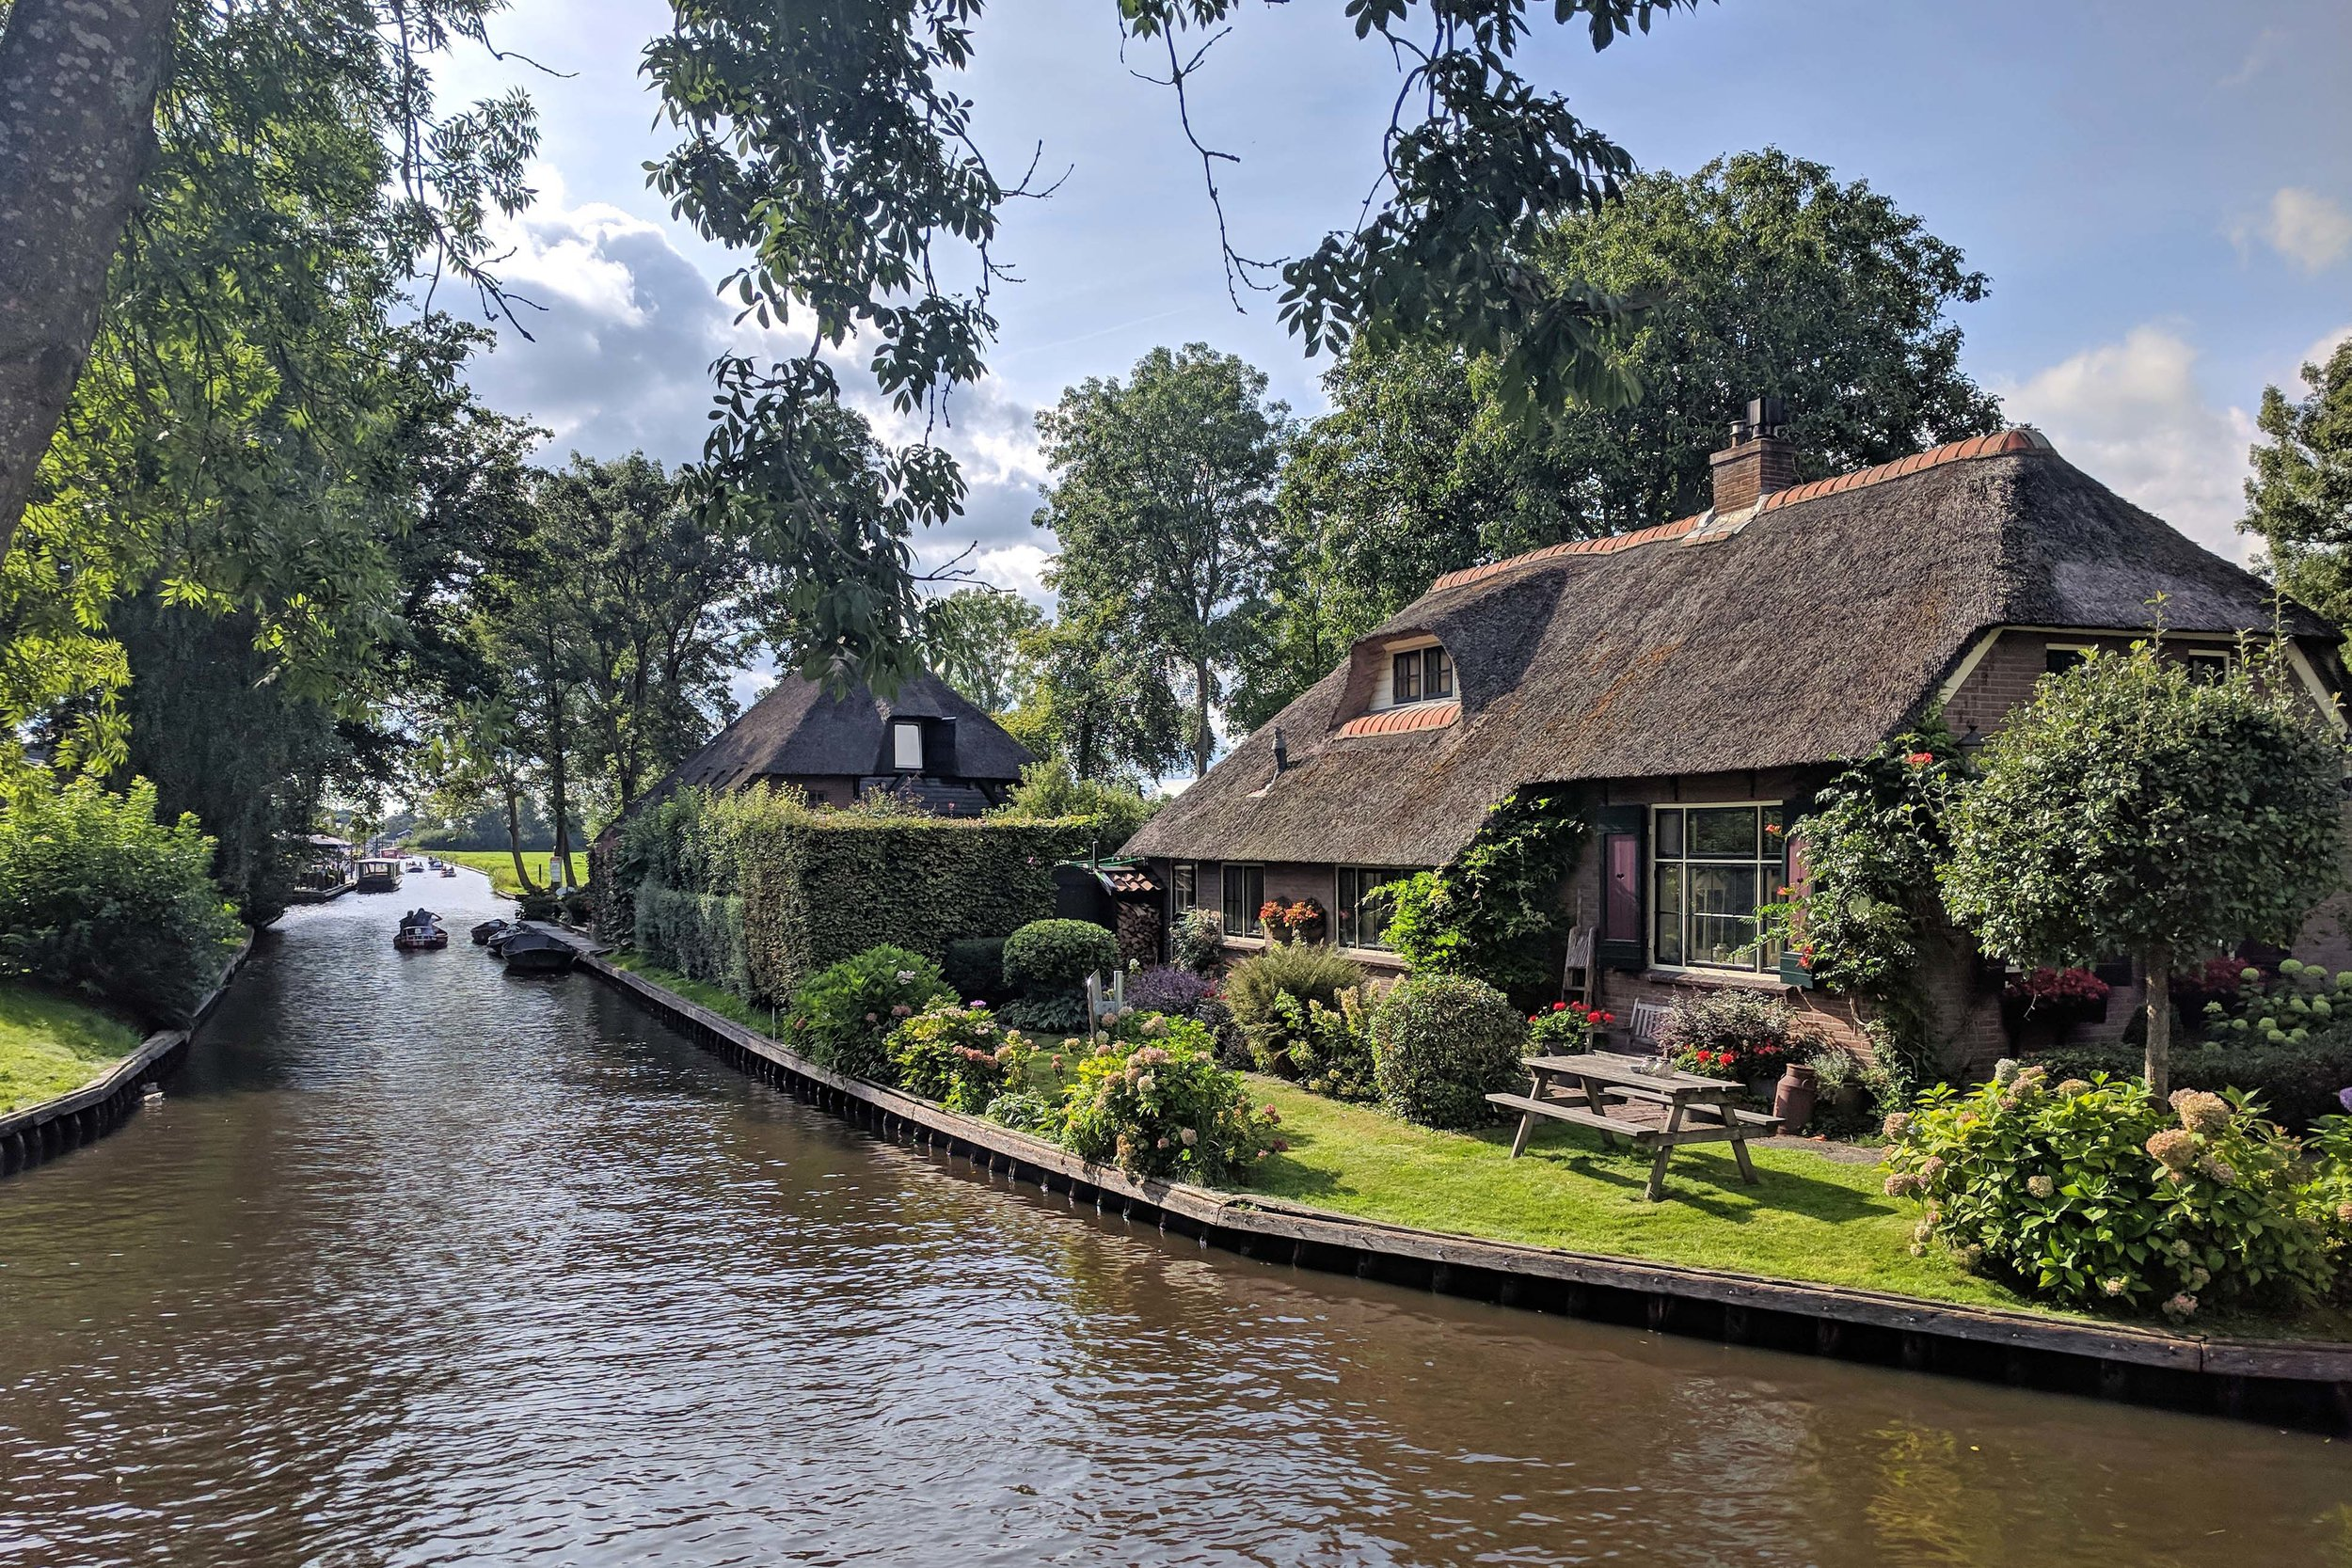 Picture Postcard Giethoorn